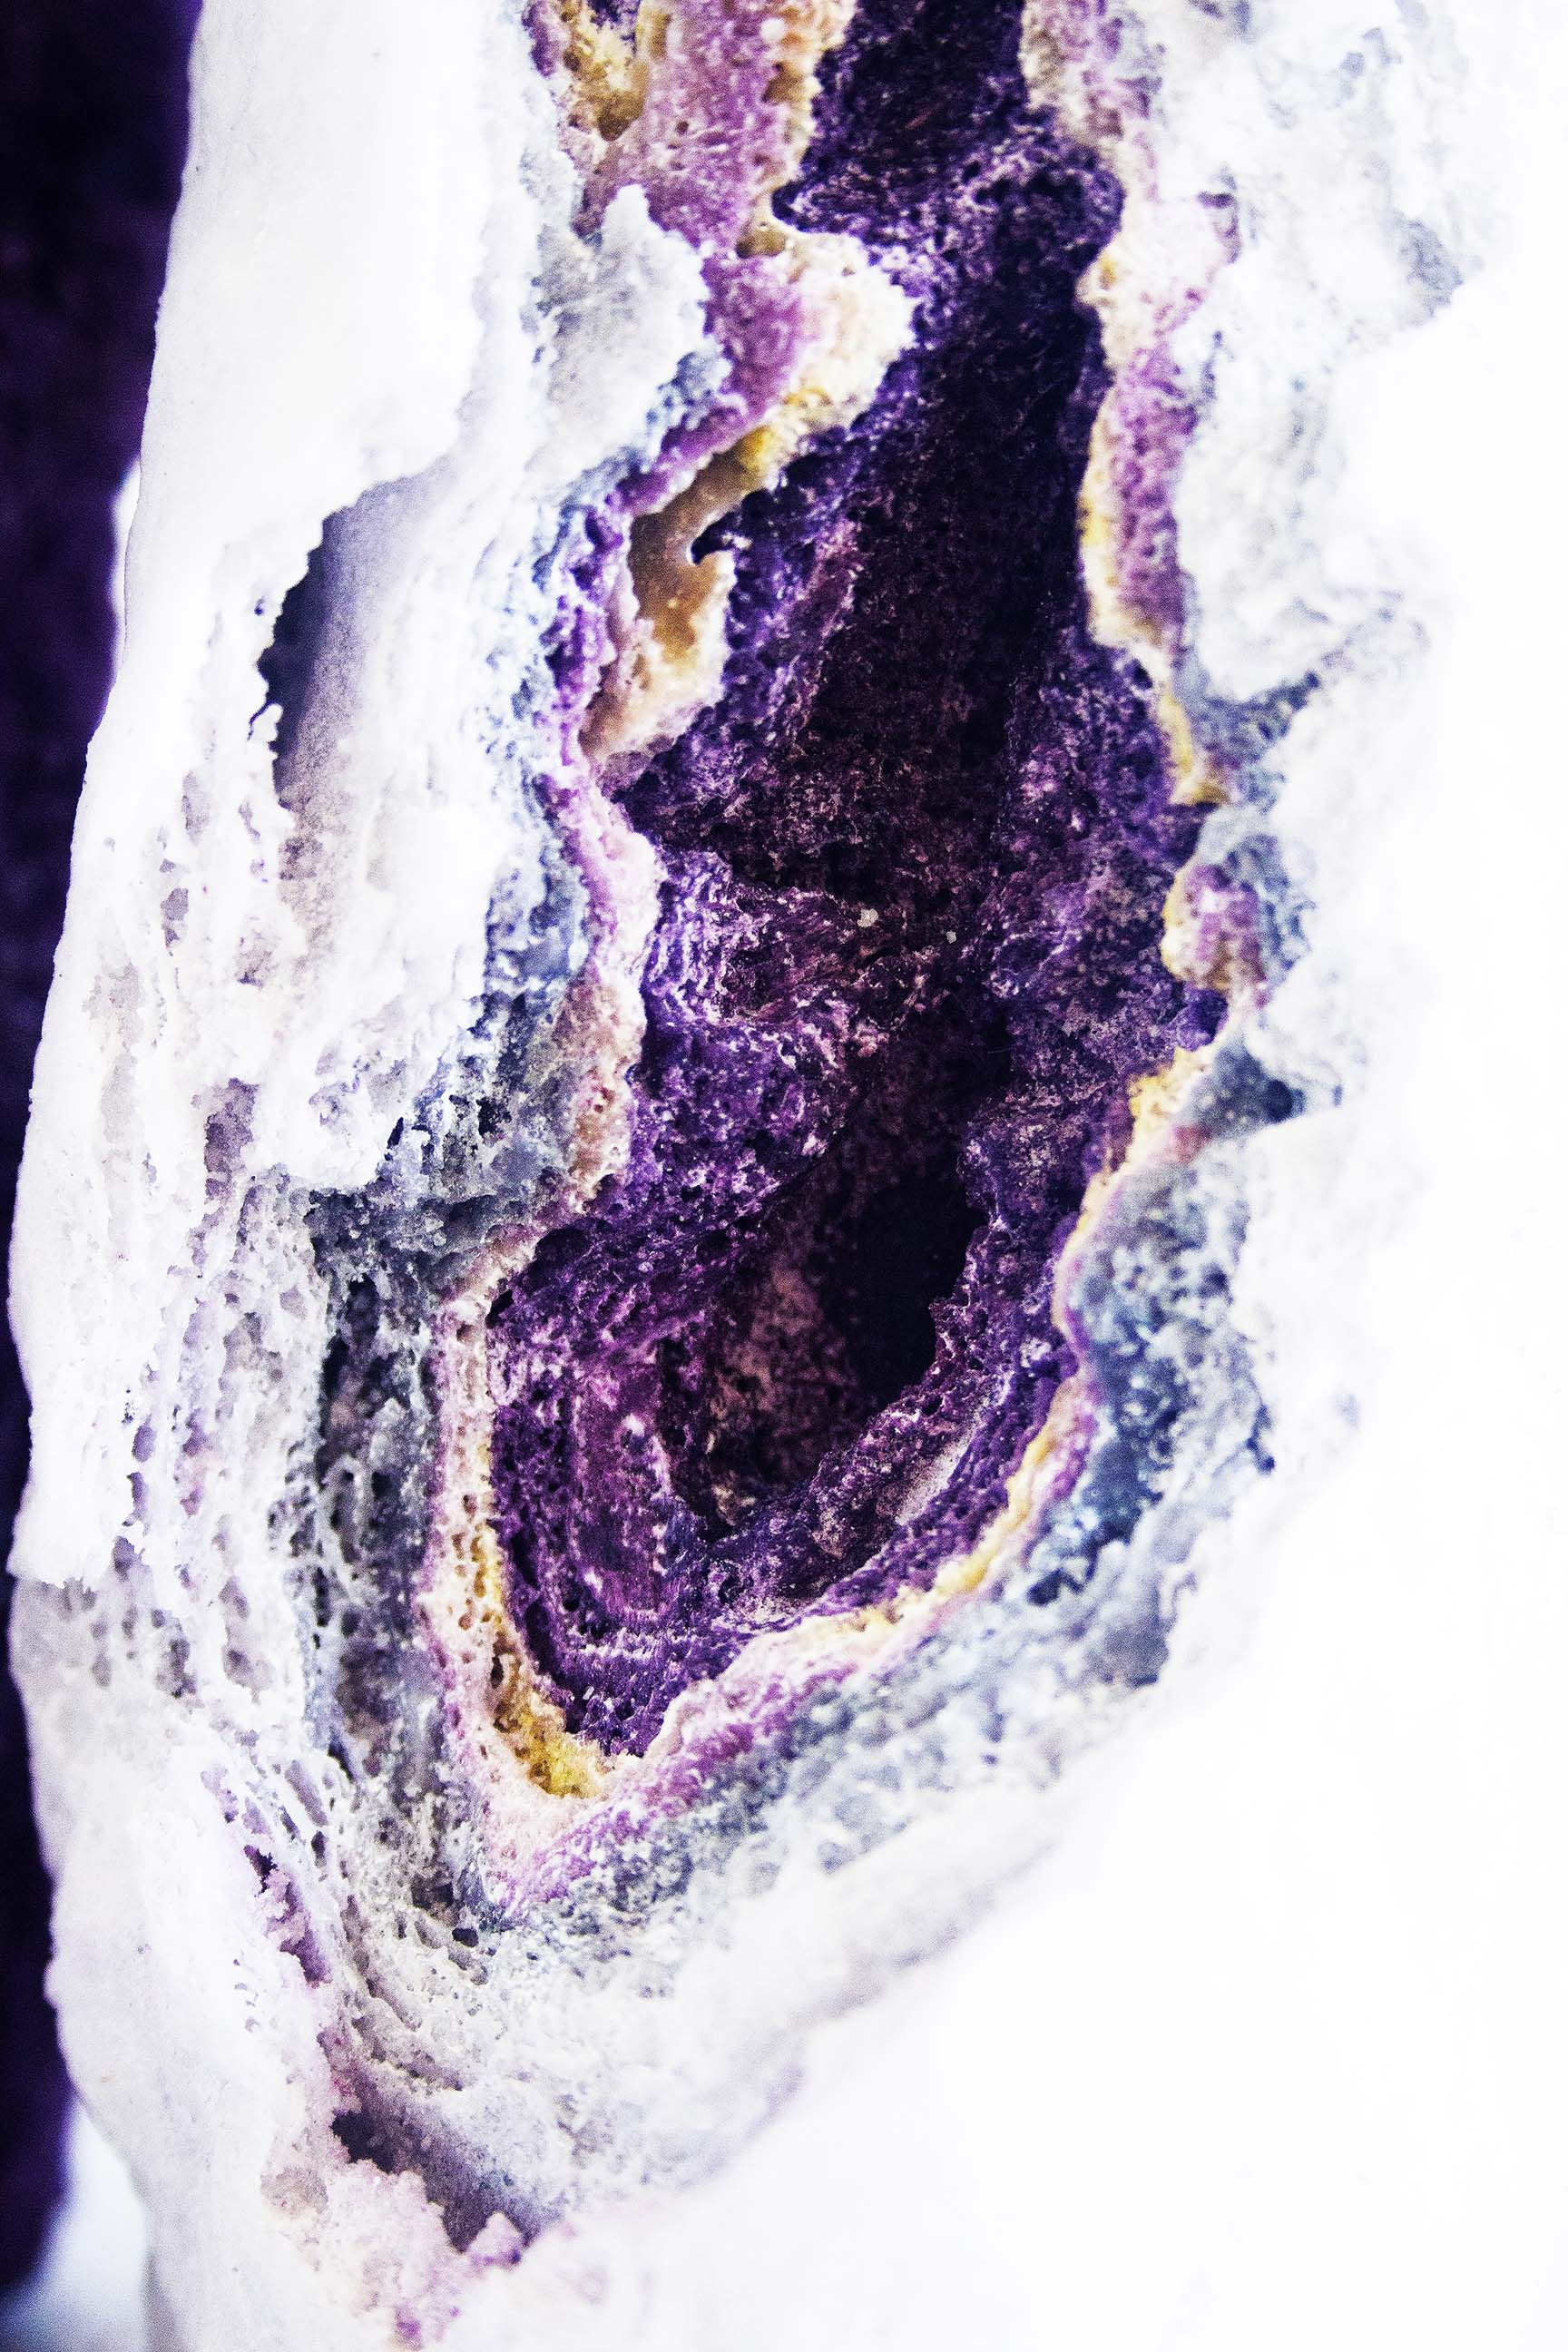 Material detail of a layered candy floss vase by Martijntje Cornelia